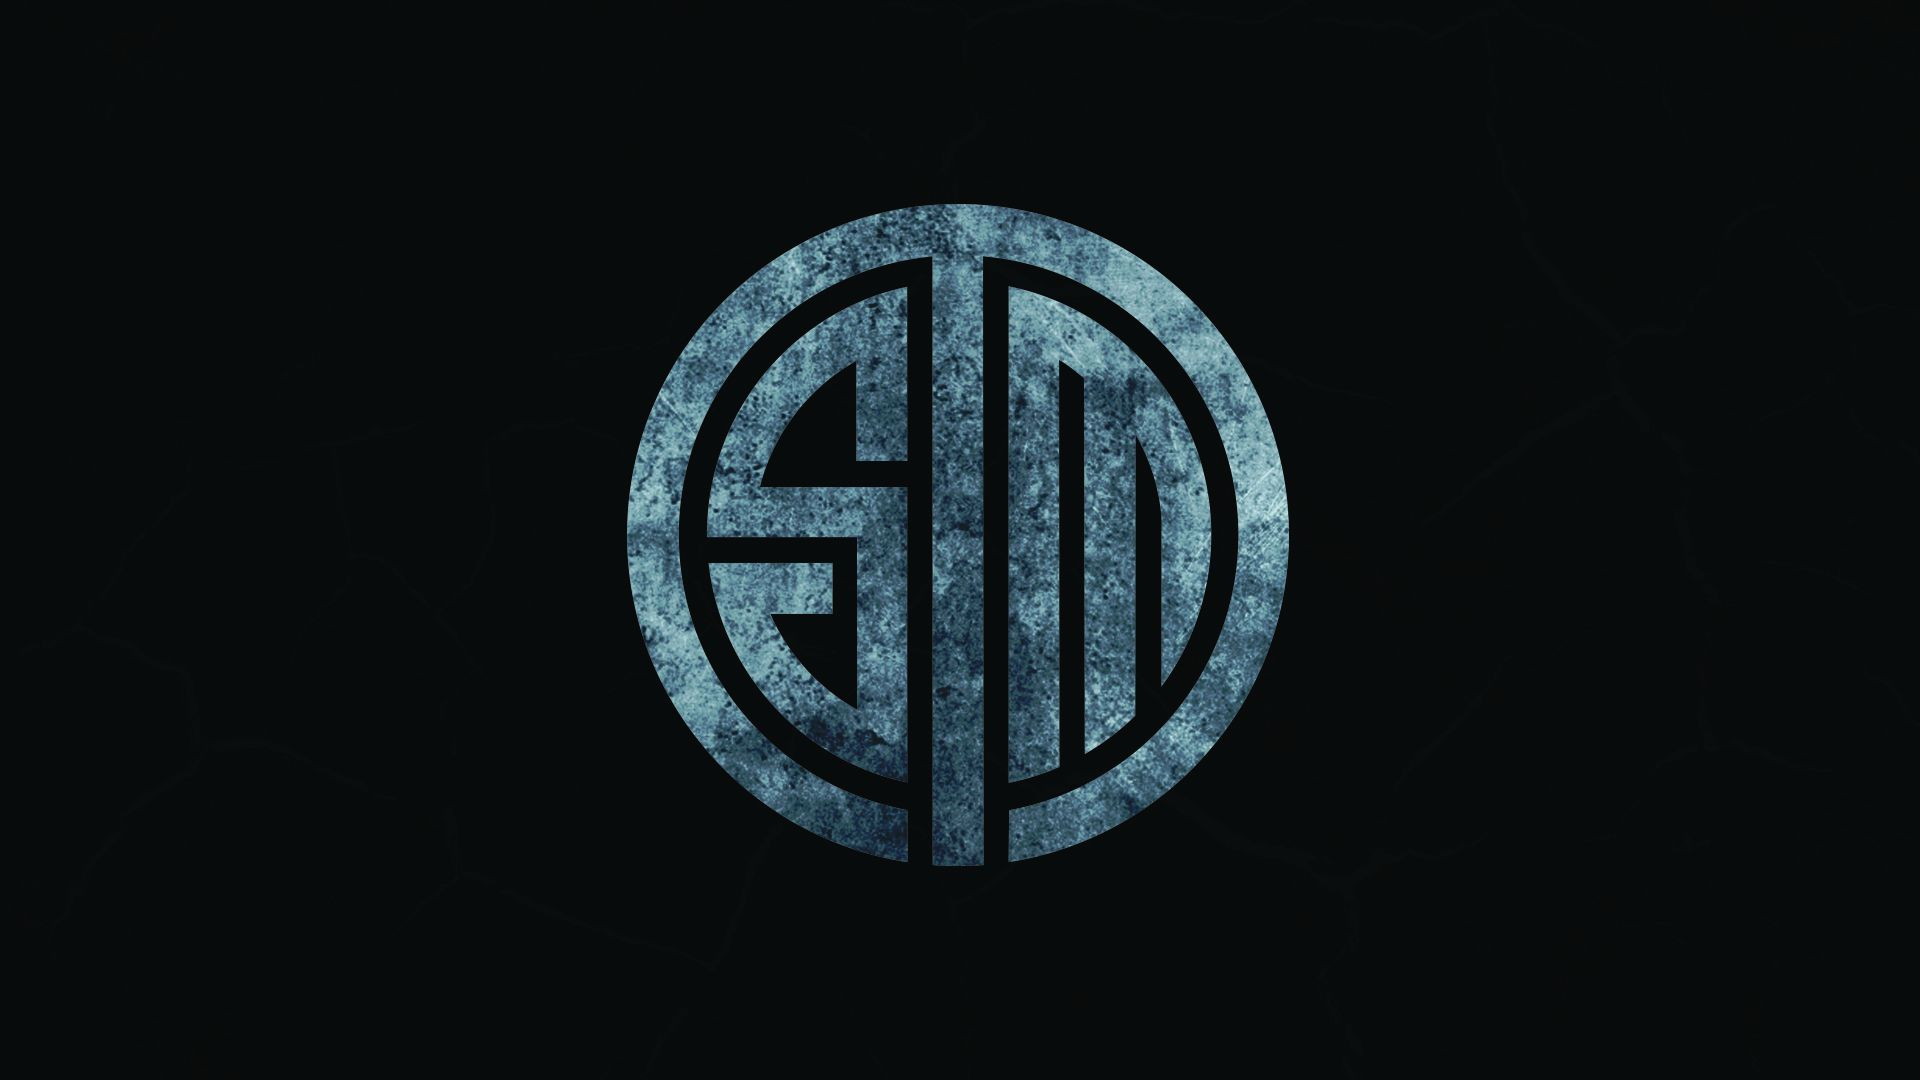 Csgo Wallpaper Hd Doublelift Joins Tsm After Being Kicked From Clg Bc Gb